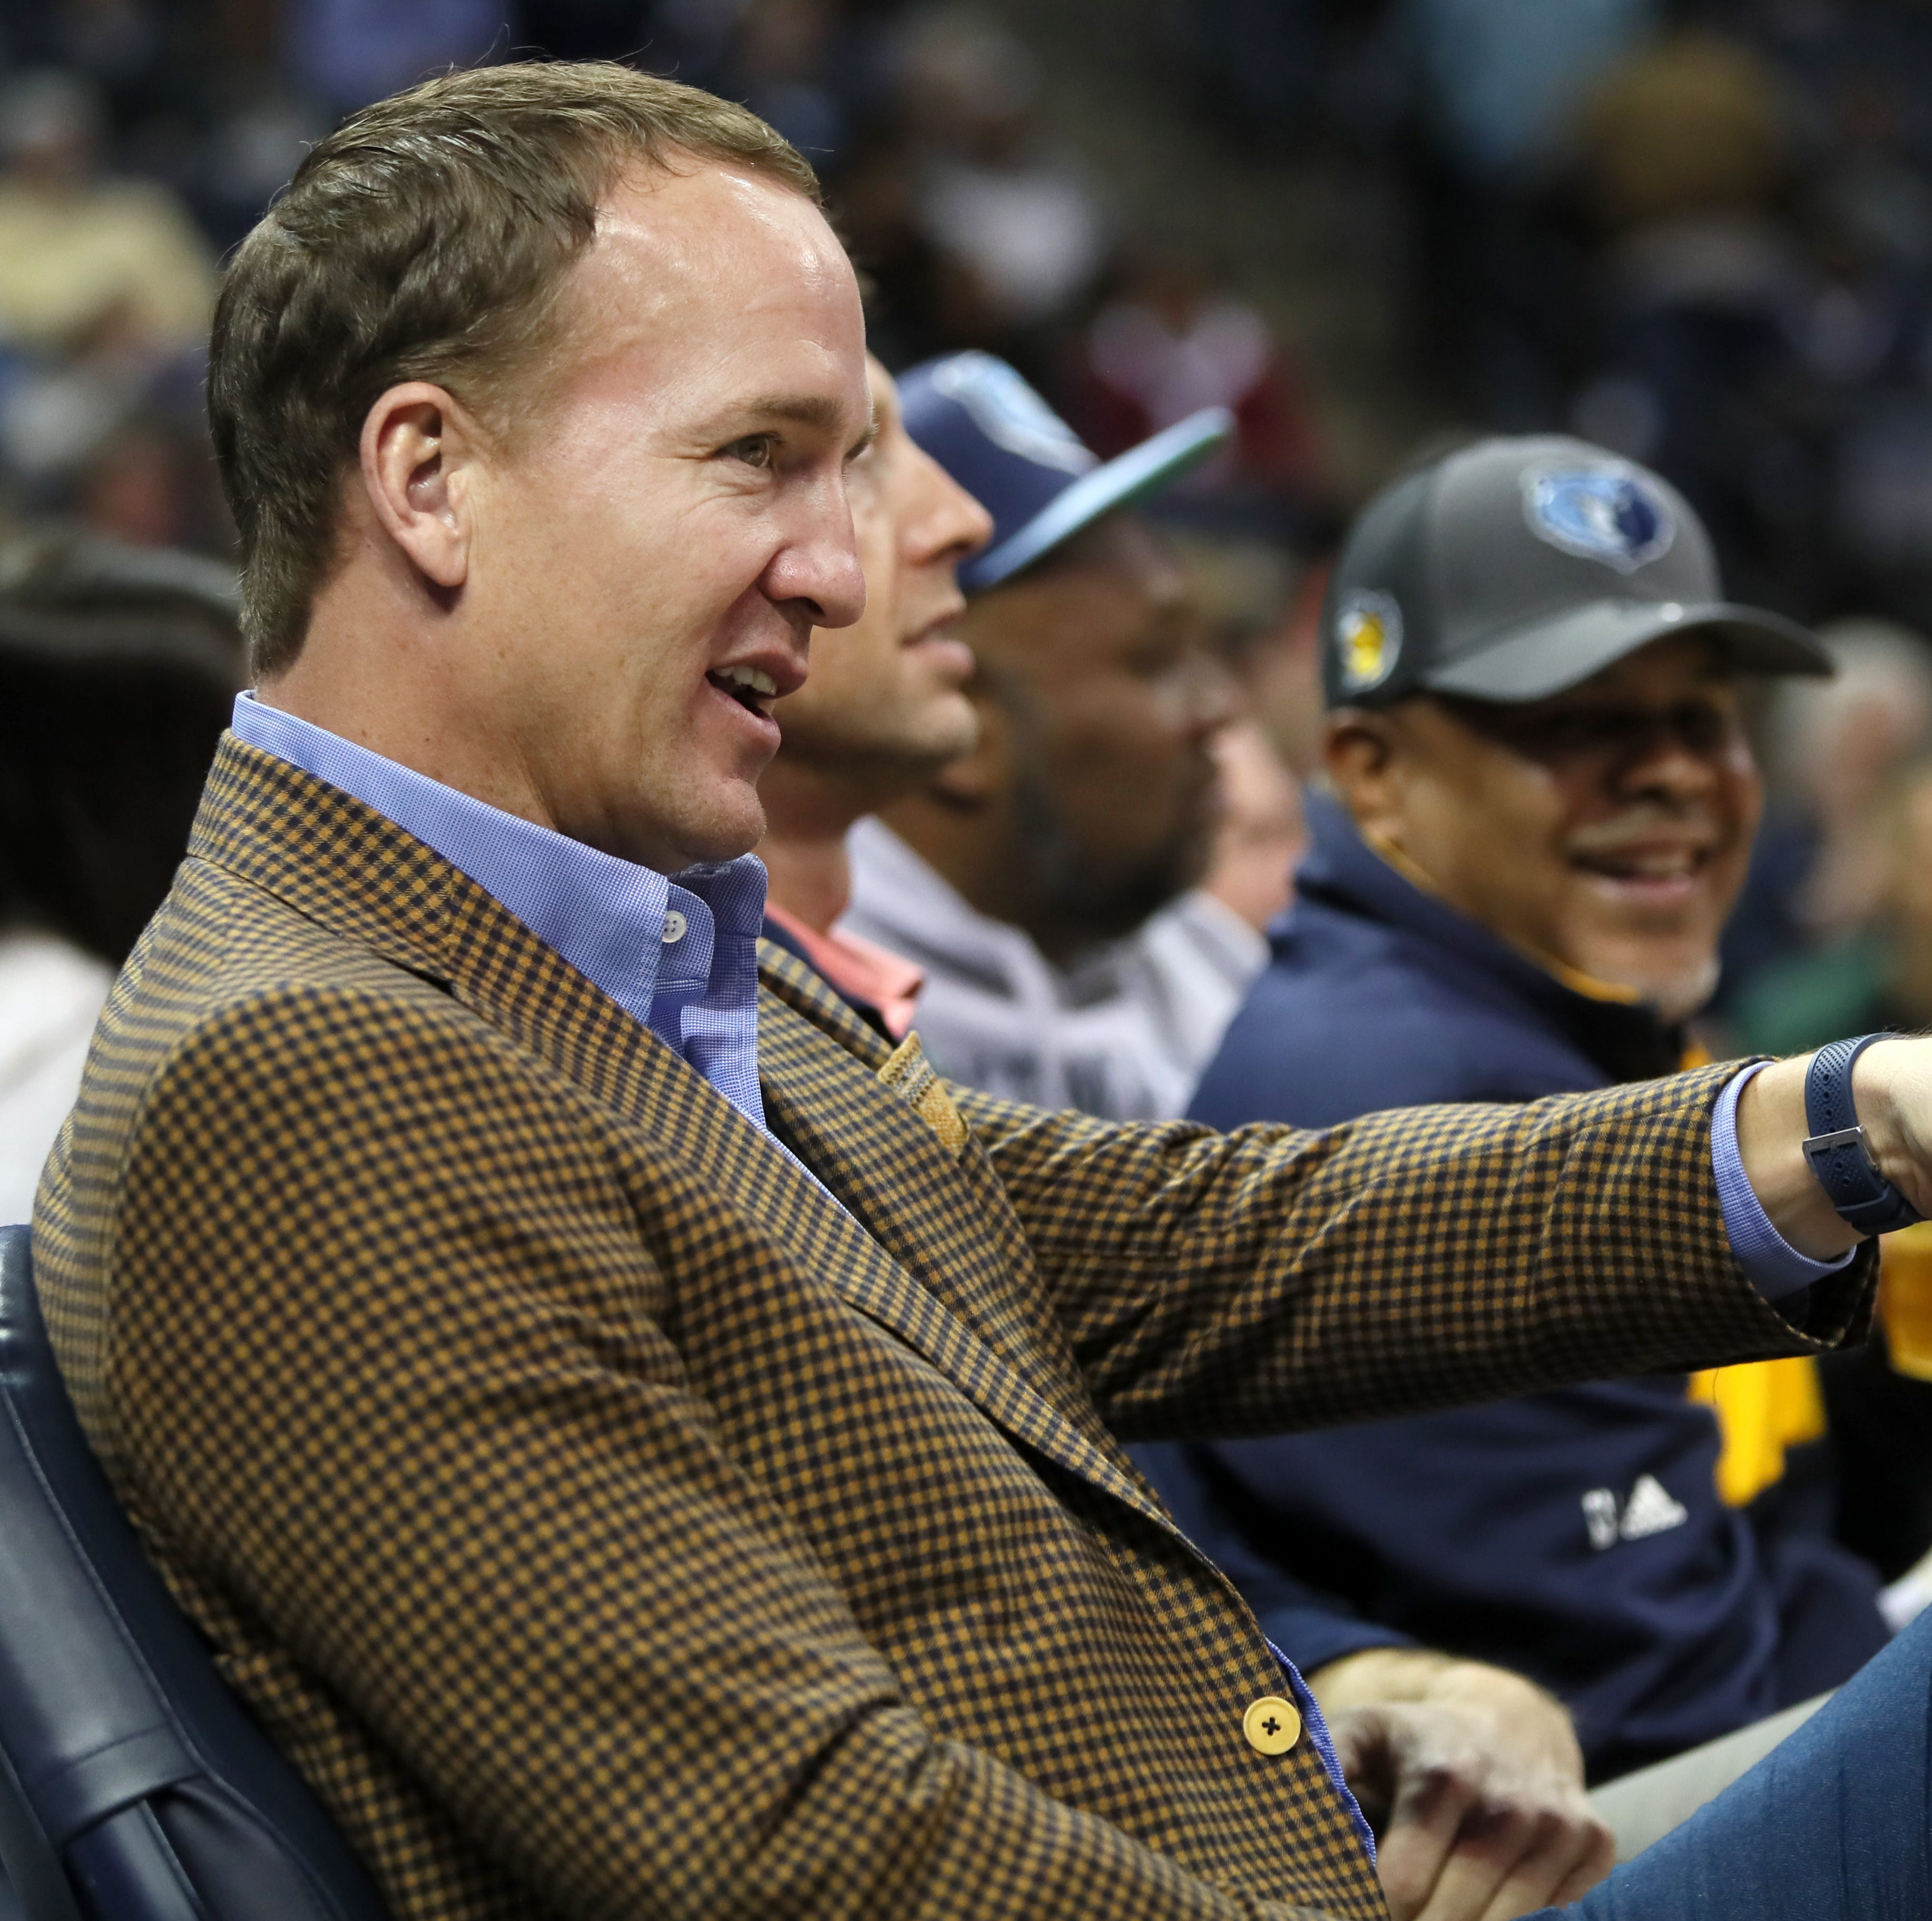 Peyton Manning – and a Bill Belichick lookalike – dropped by FedExForum for the Grizzlies game